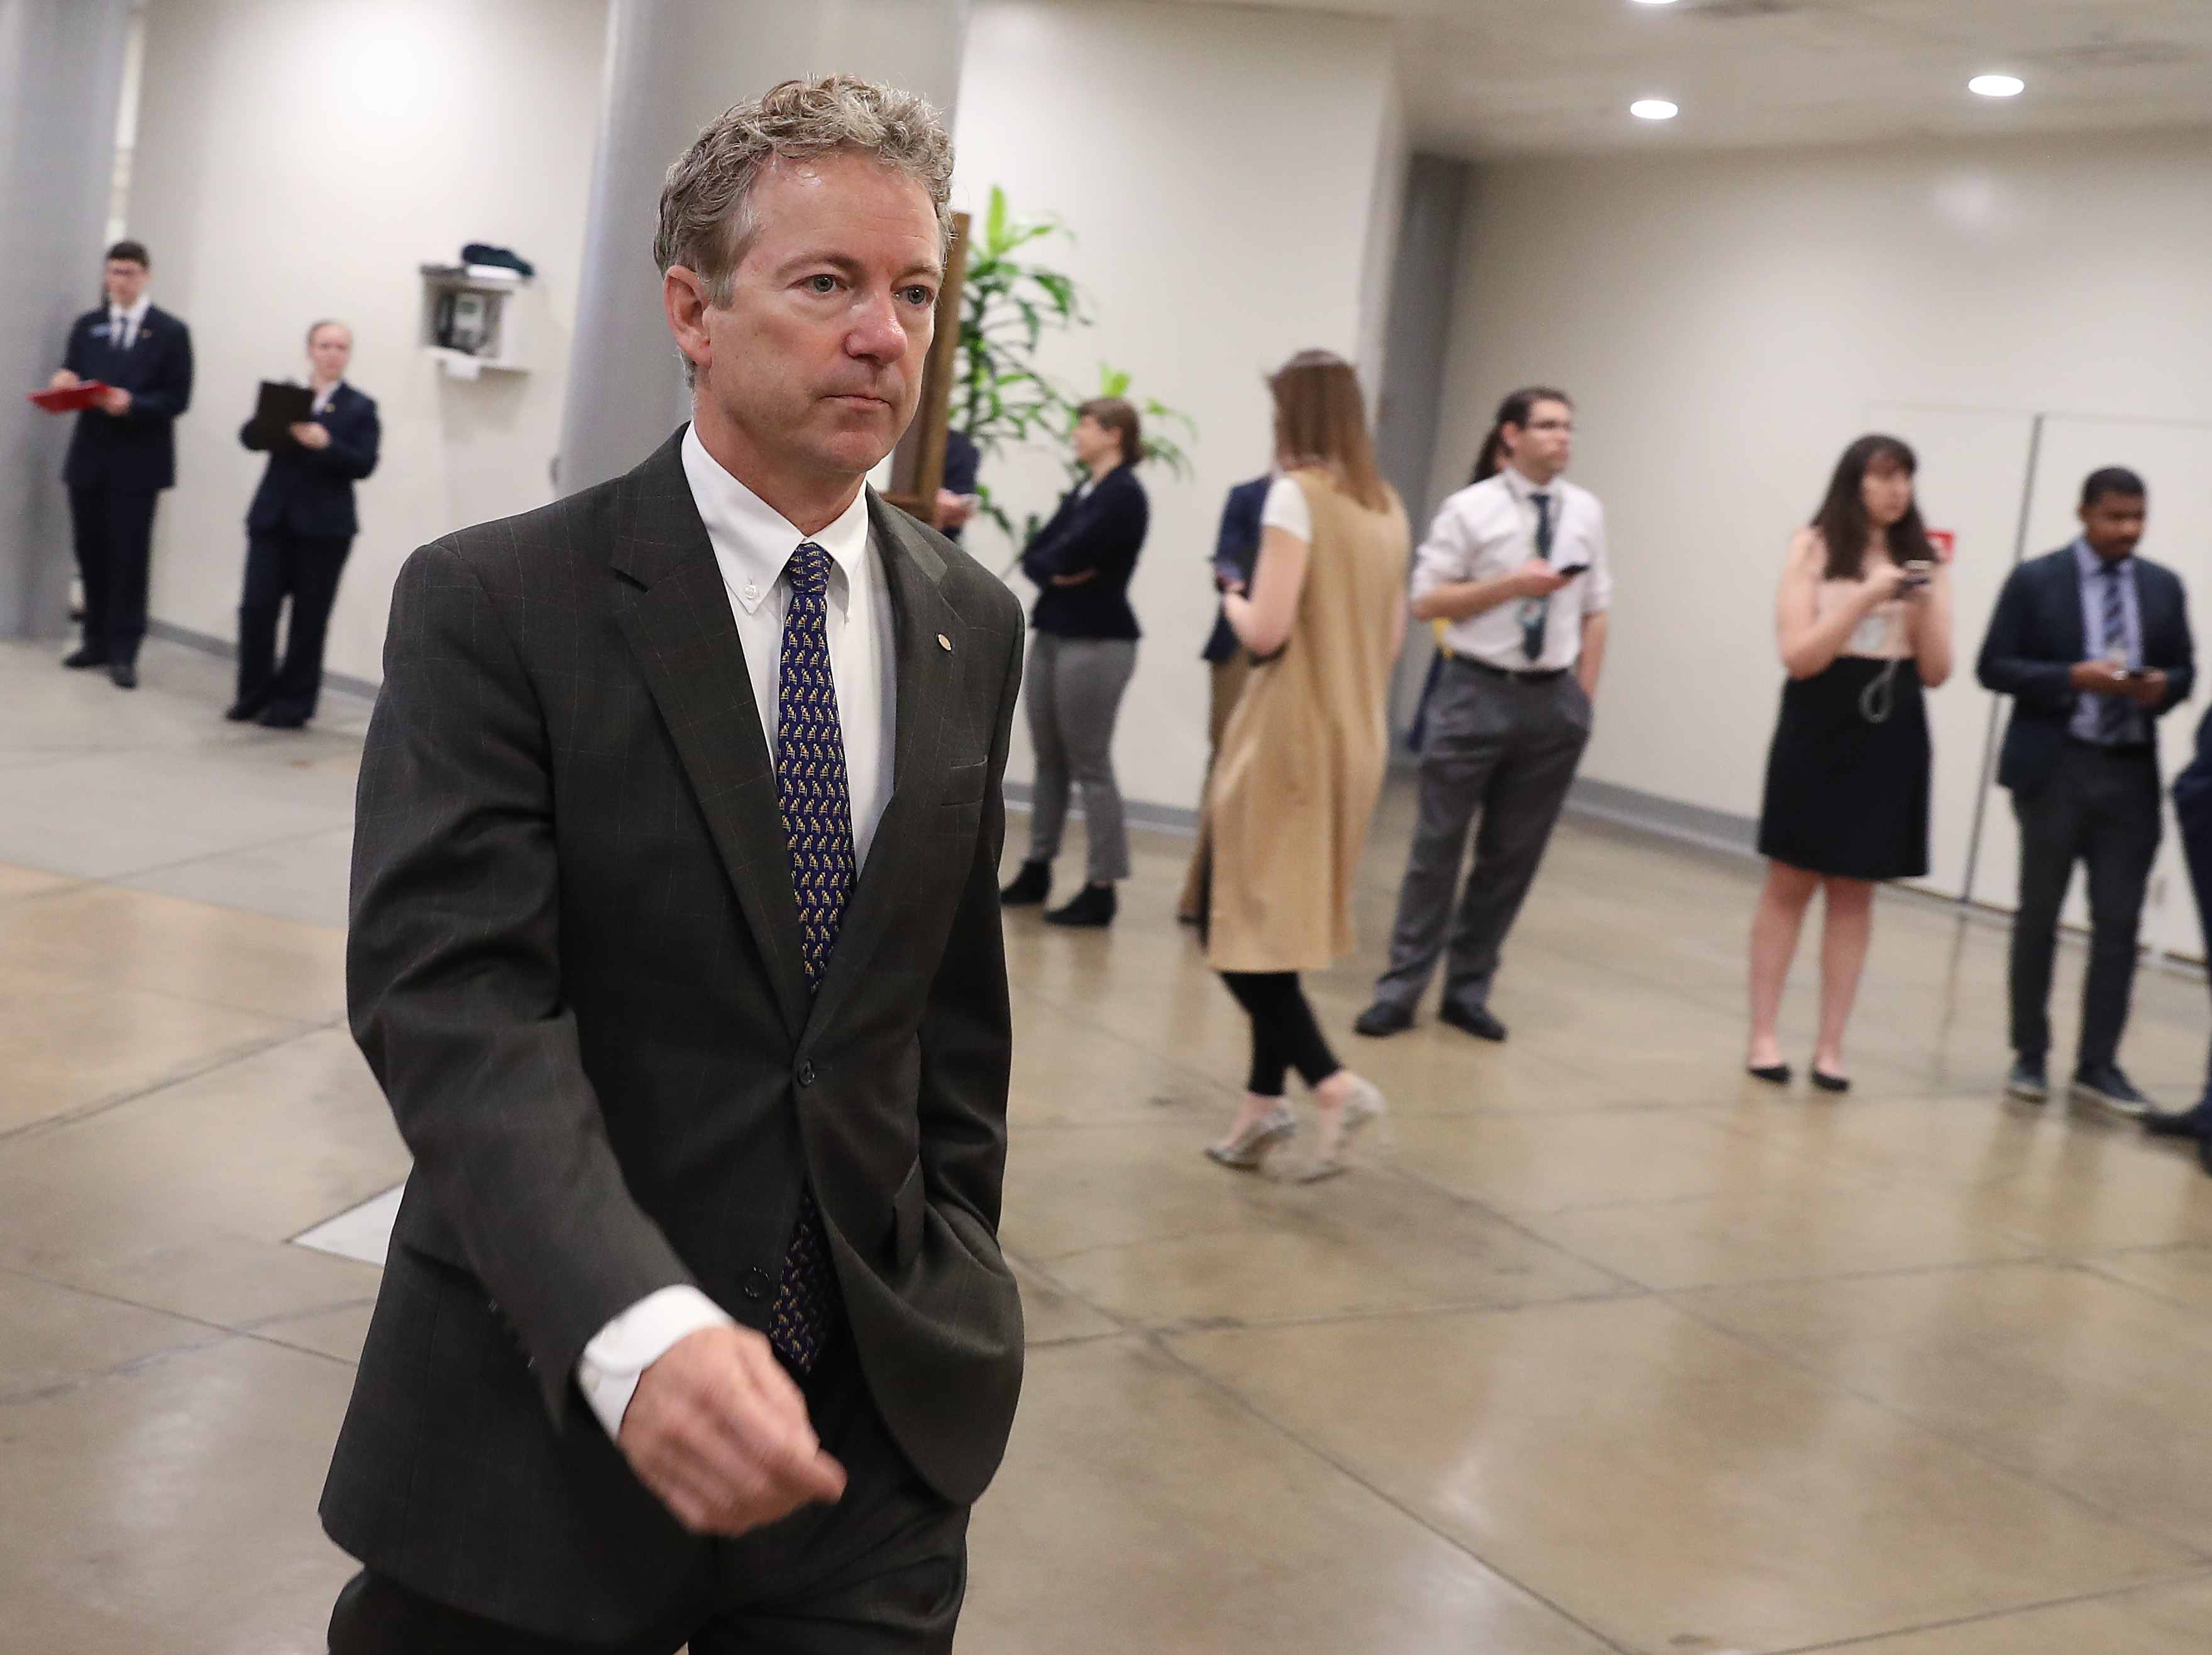 Sen. Rand Paul walks through the U.S. Capitol prior to the Senate voting to overturn the President's national emergency border declaration, at the U.S. Capitol on March 14, 2019 in Washington, DC. (Photo by Mark Wilson/Getty Images)